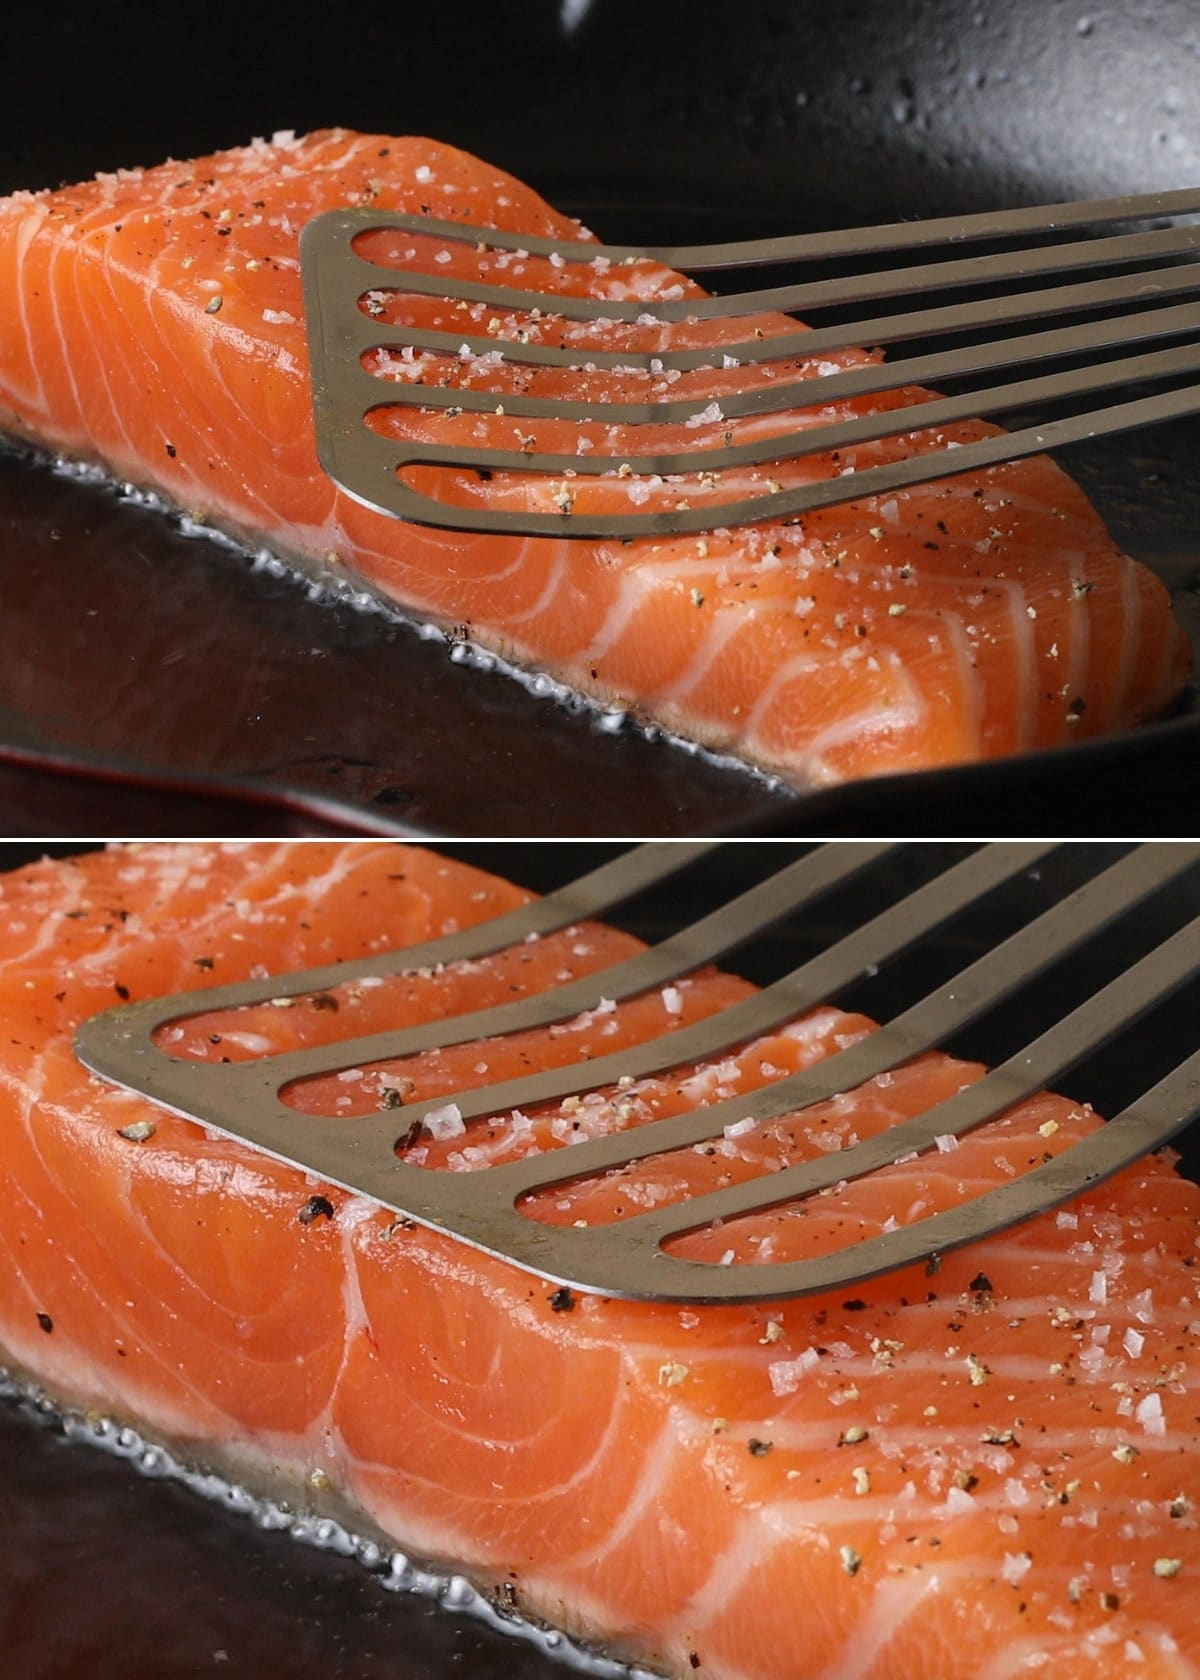 two photos showing pressing down on a salmon fillet with a fish spatula after it's placed in a heated pan